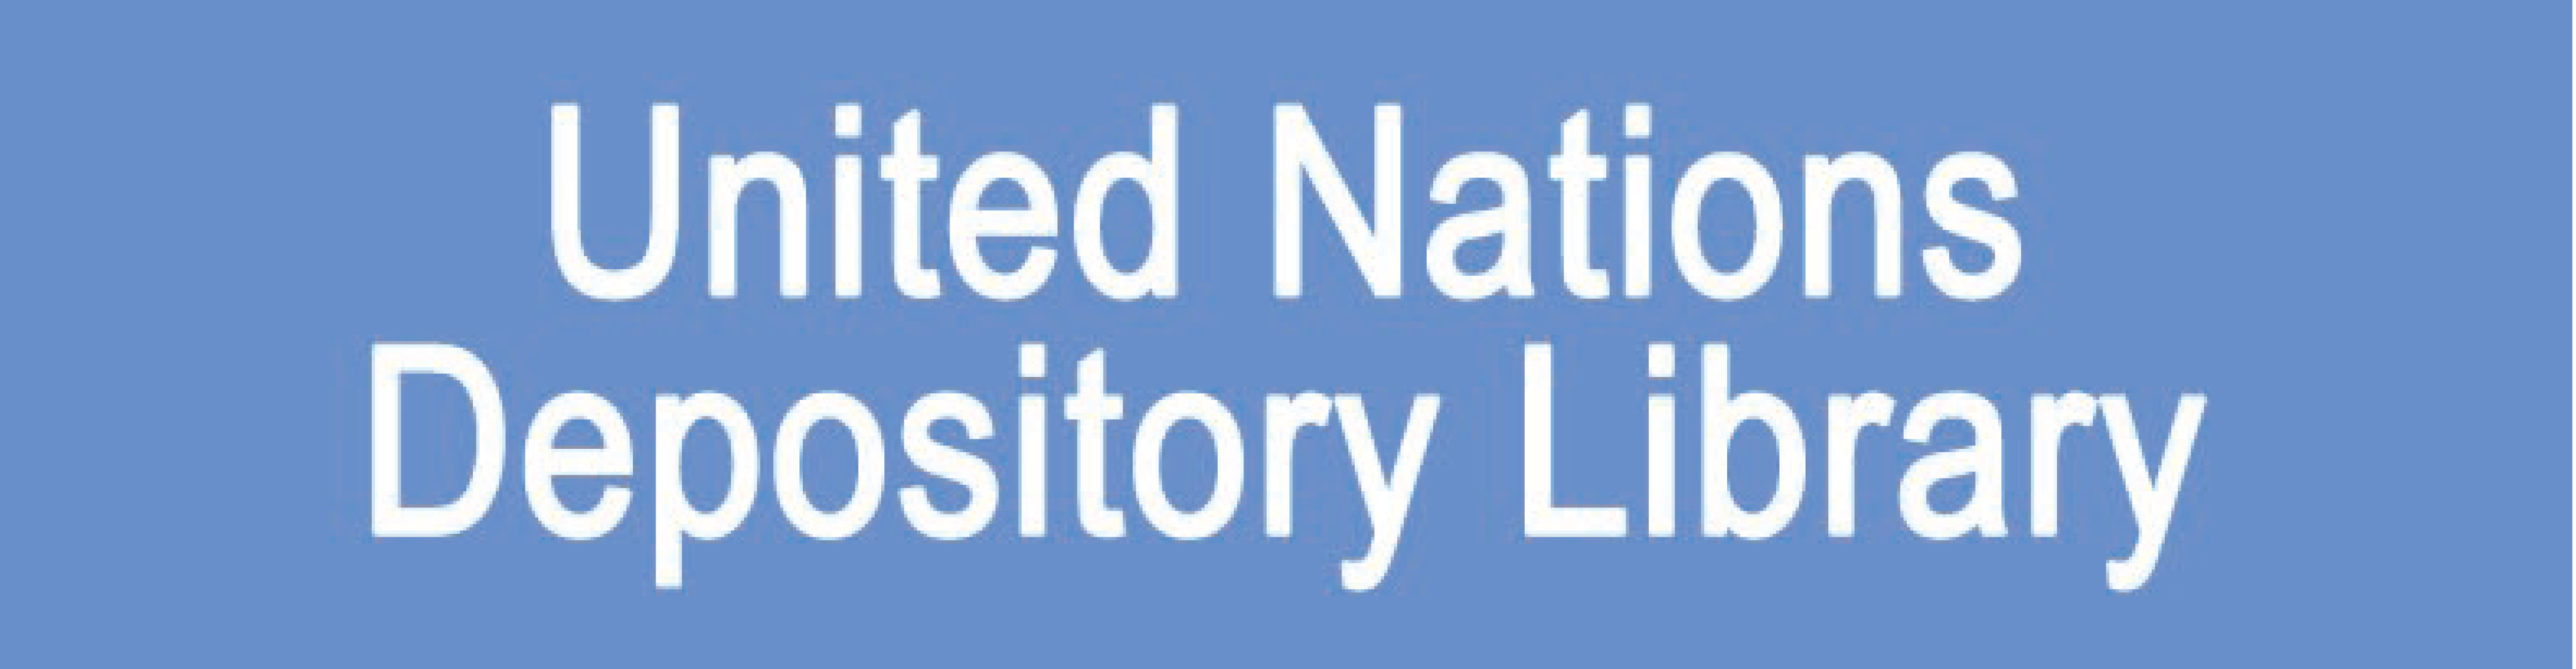 United Nations Depository Library